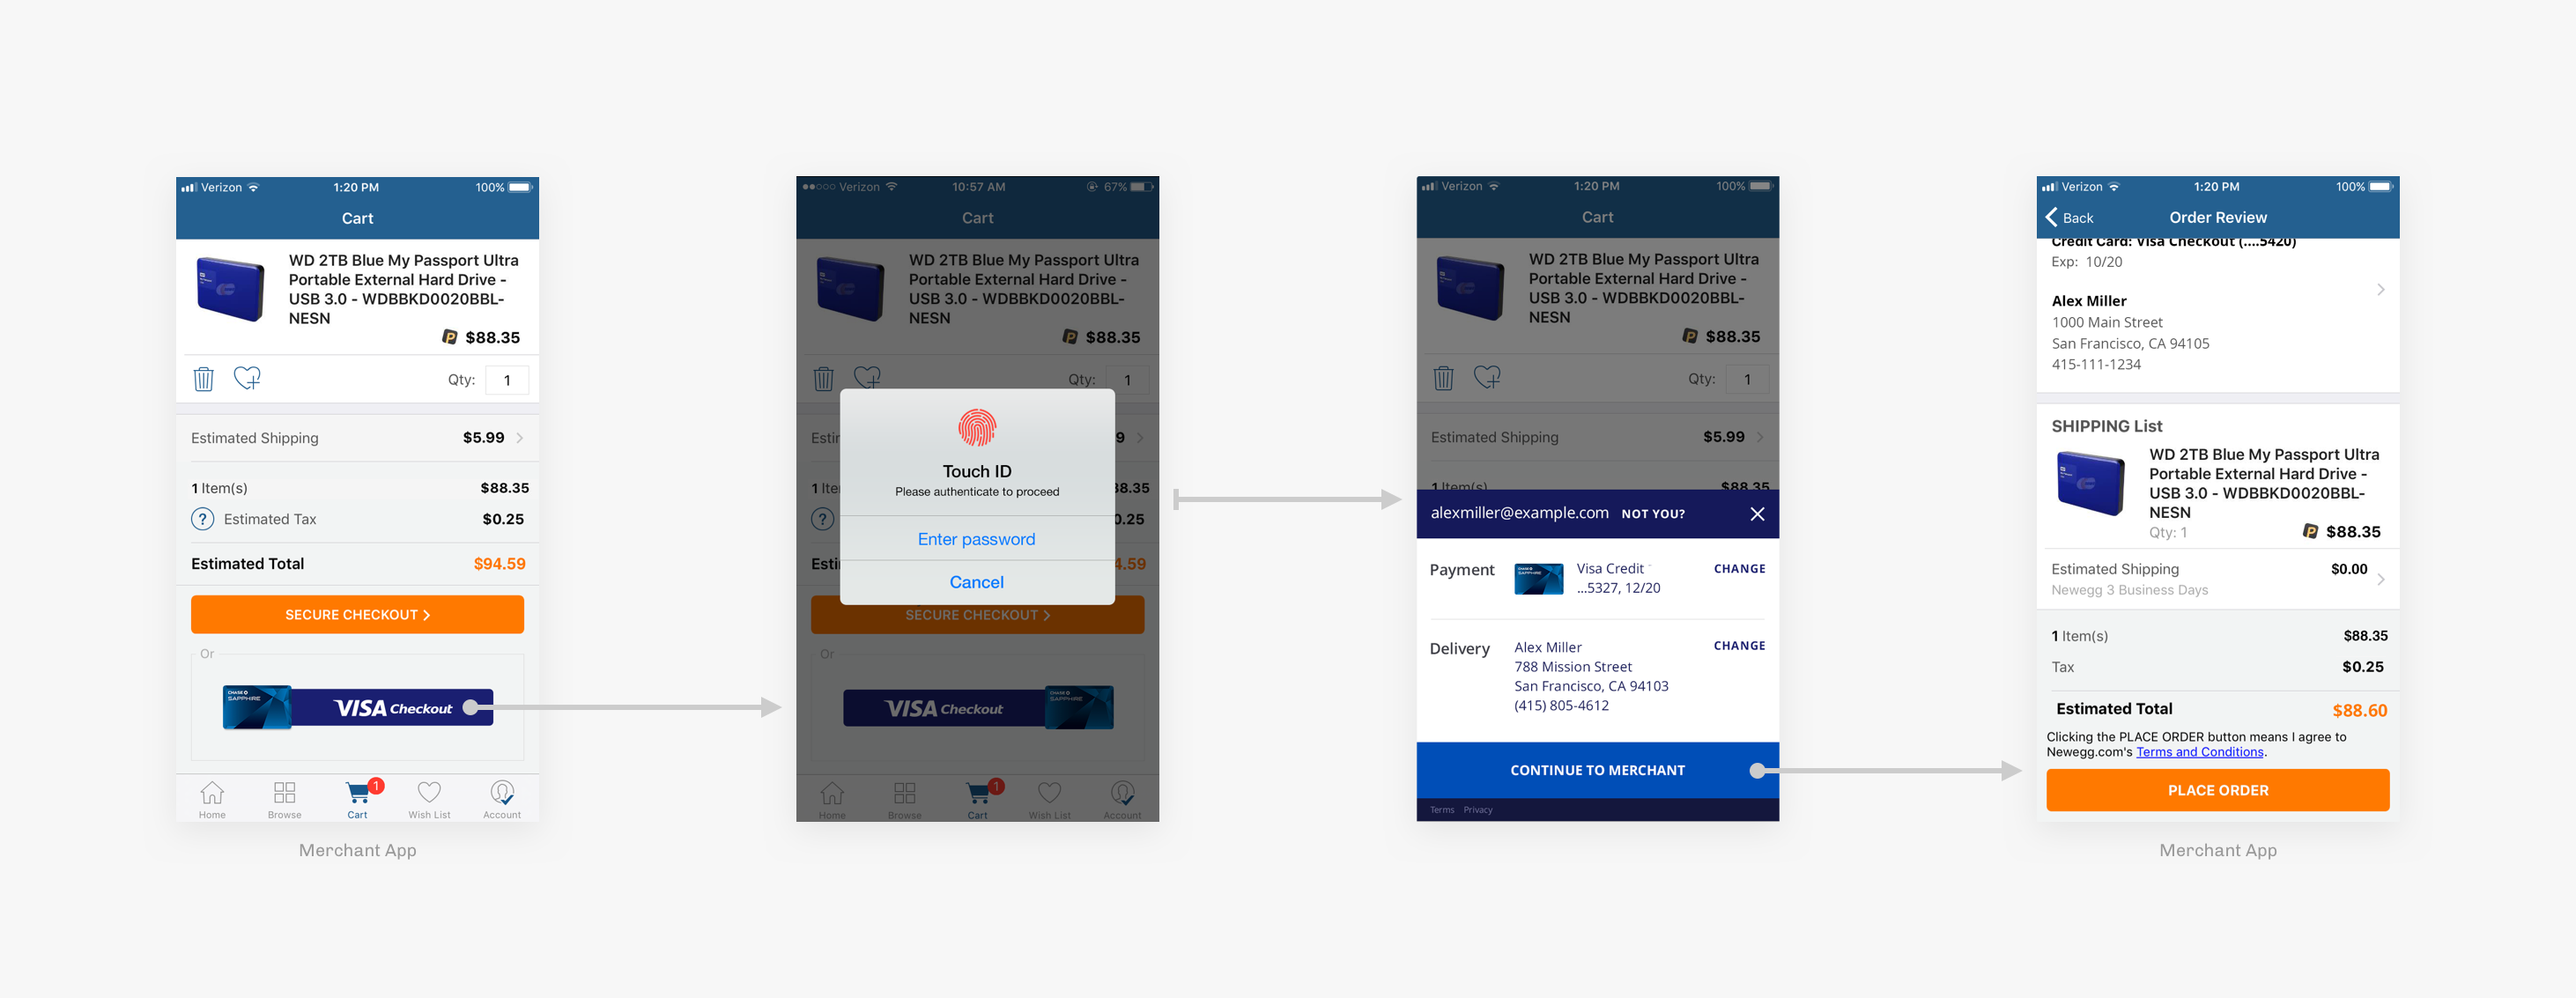 Visa Checkout: Returning User Flow